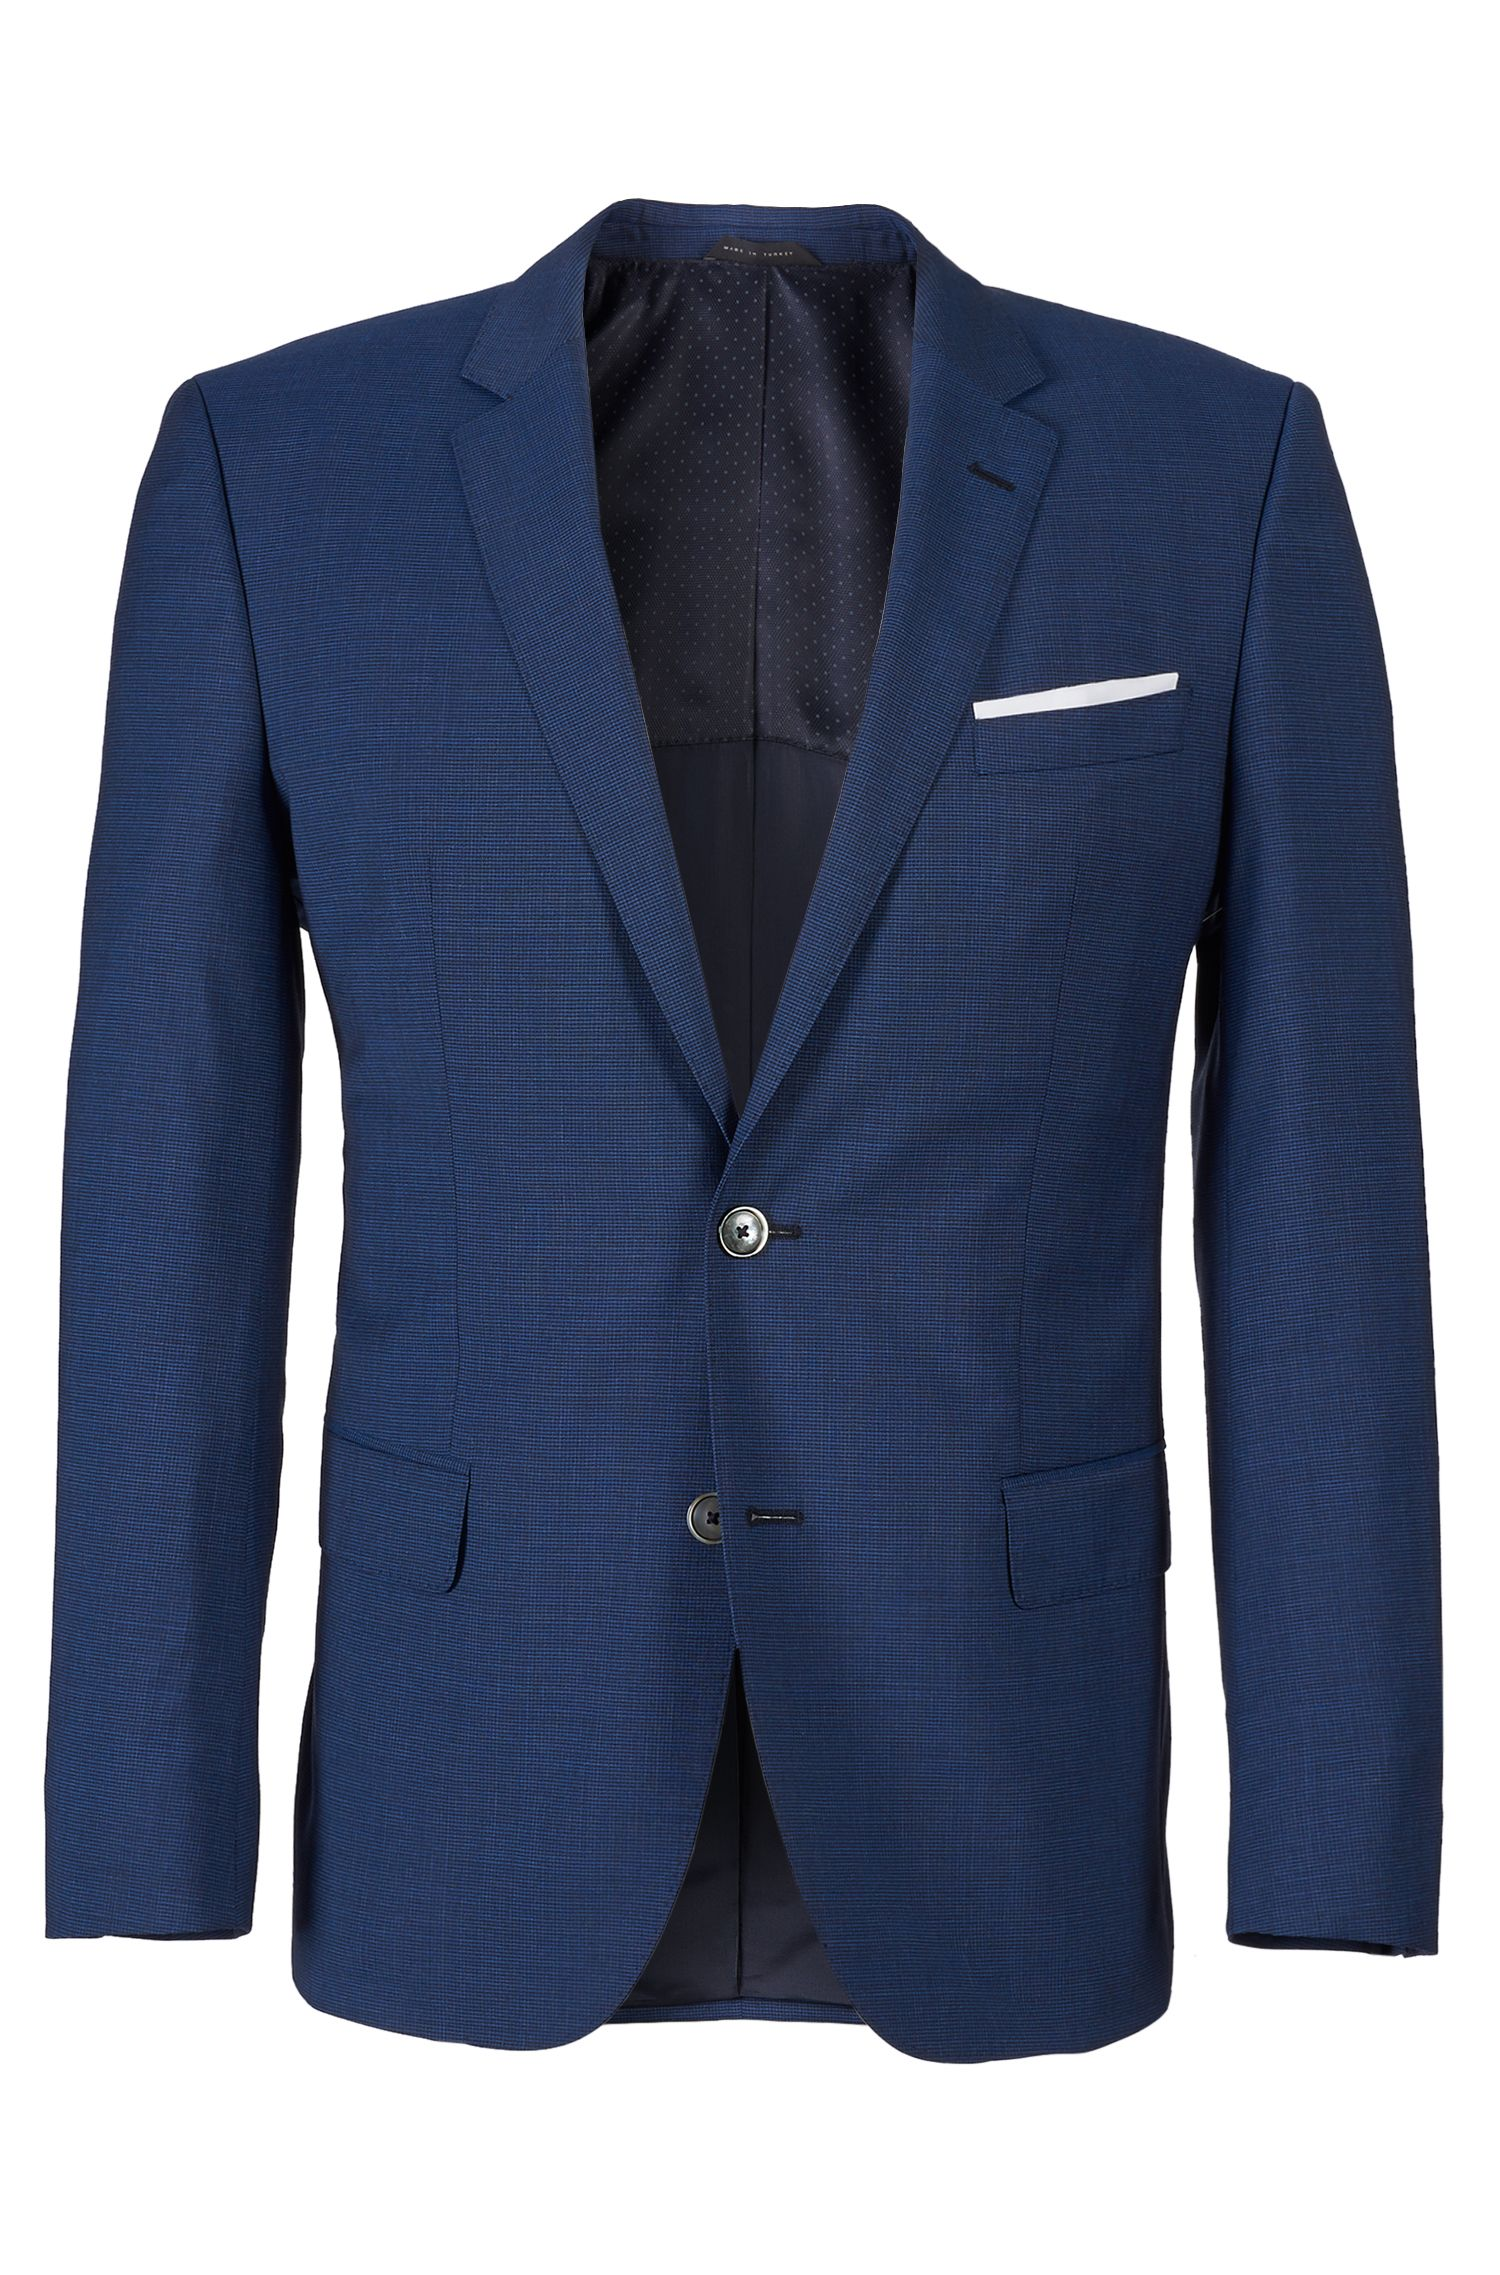 'Hutson/Gander' | Slim Fit, Super 100 Italian Virgin Wool Suit